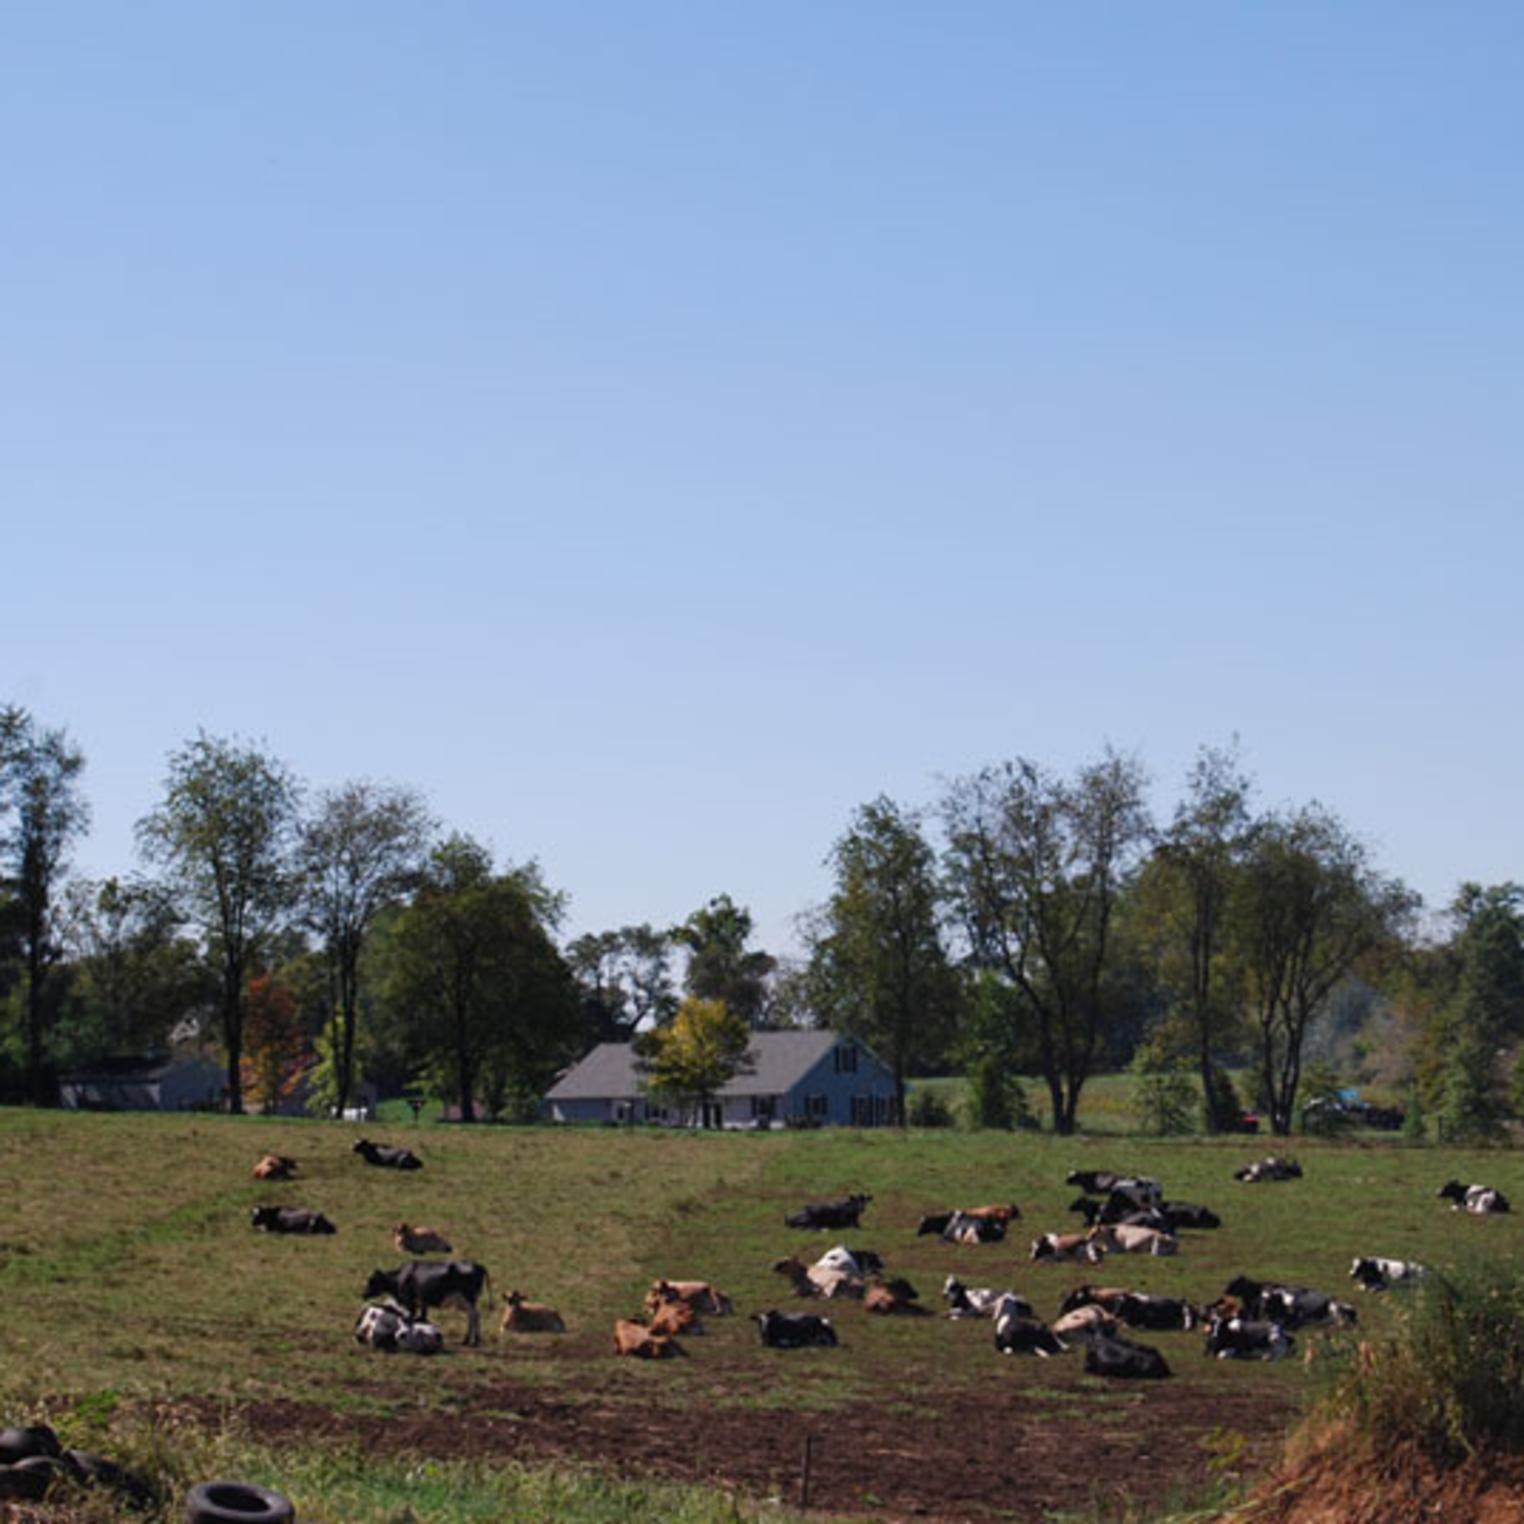 Cattle at Fulton's Dairy